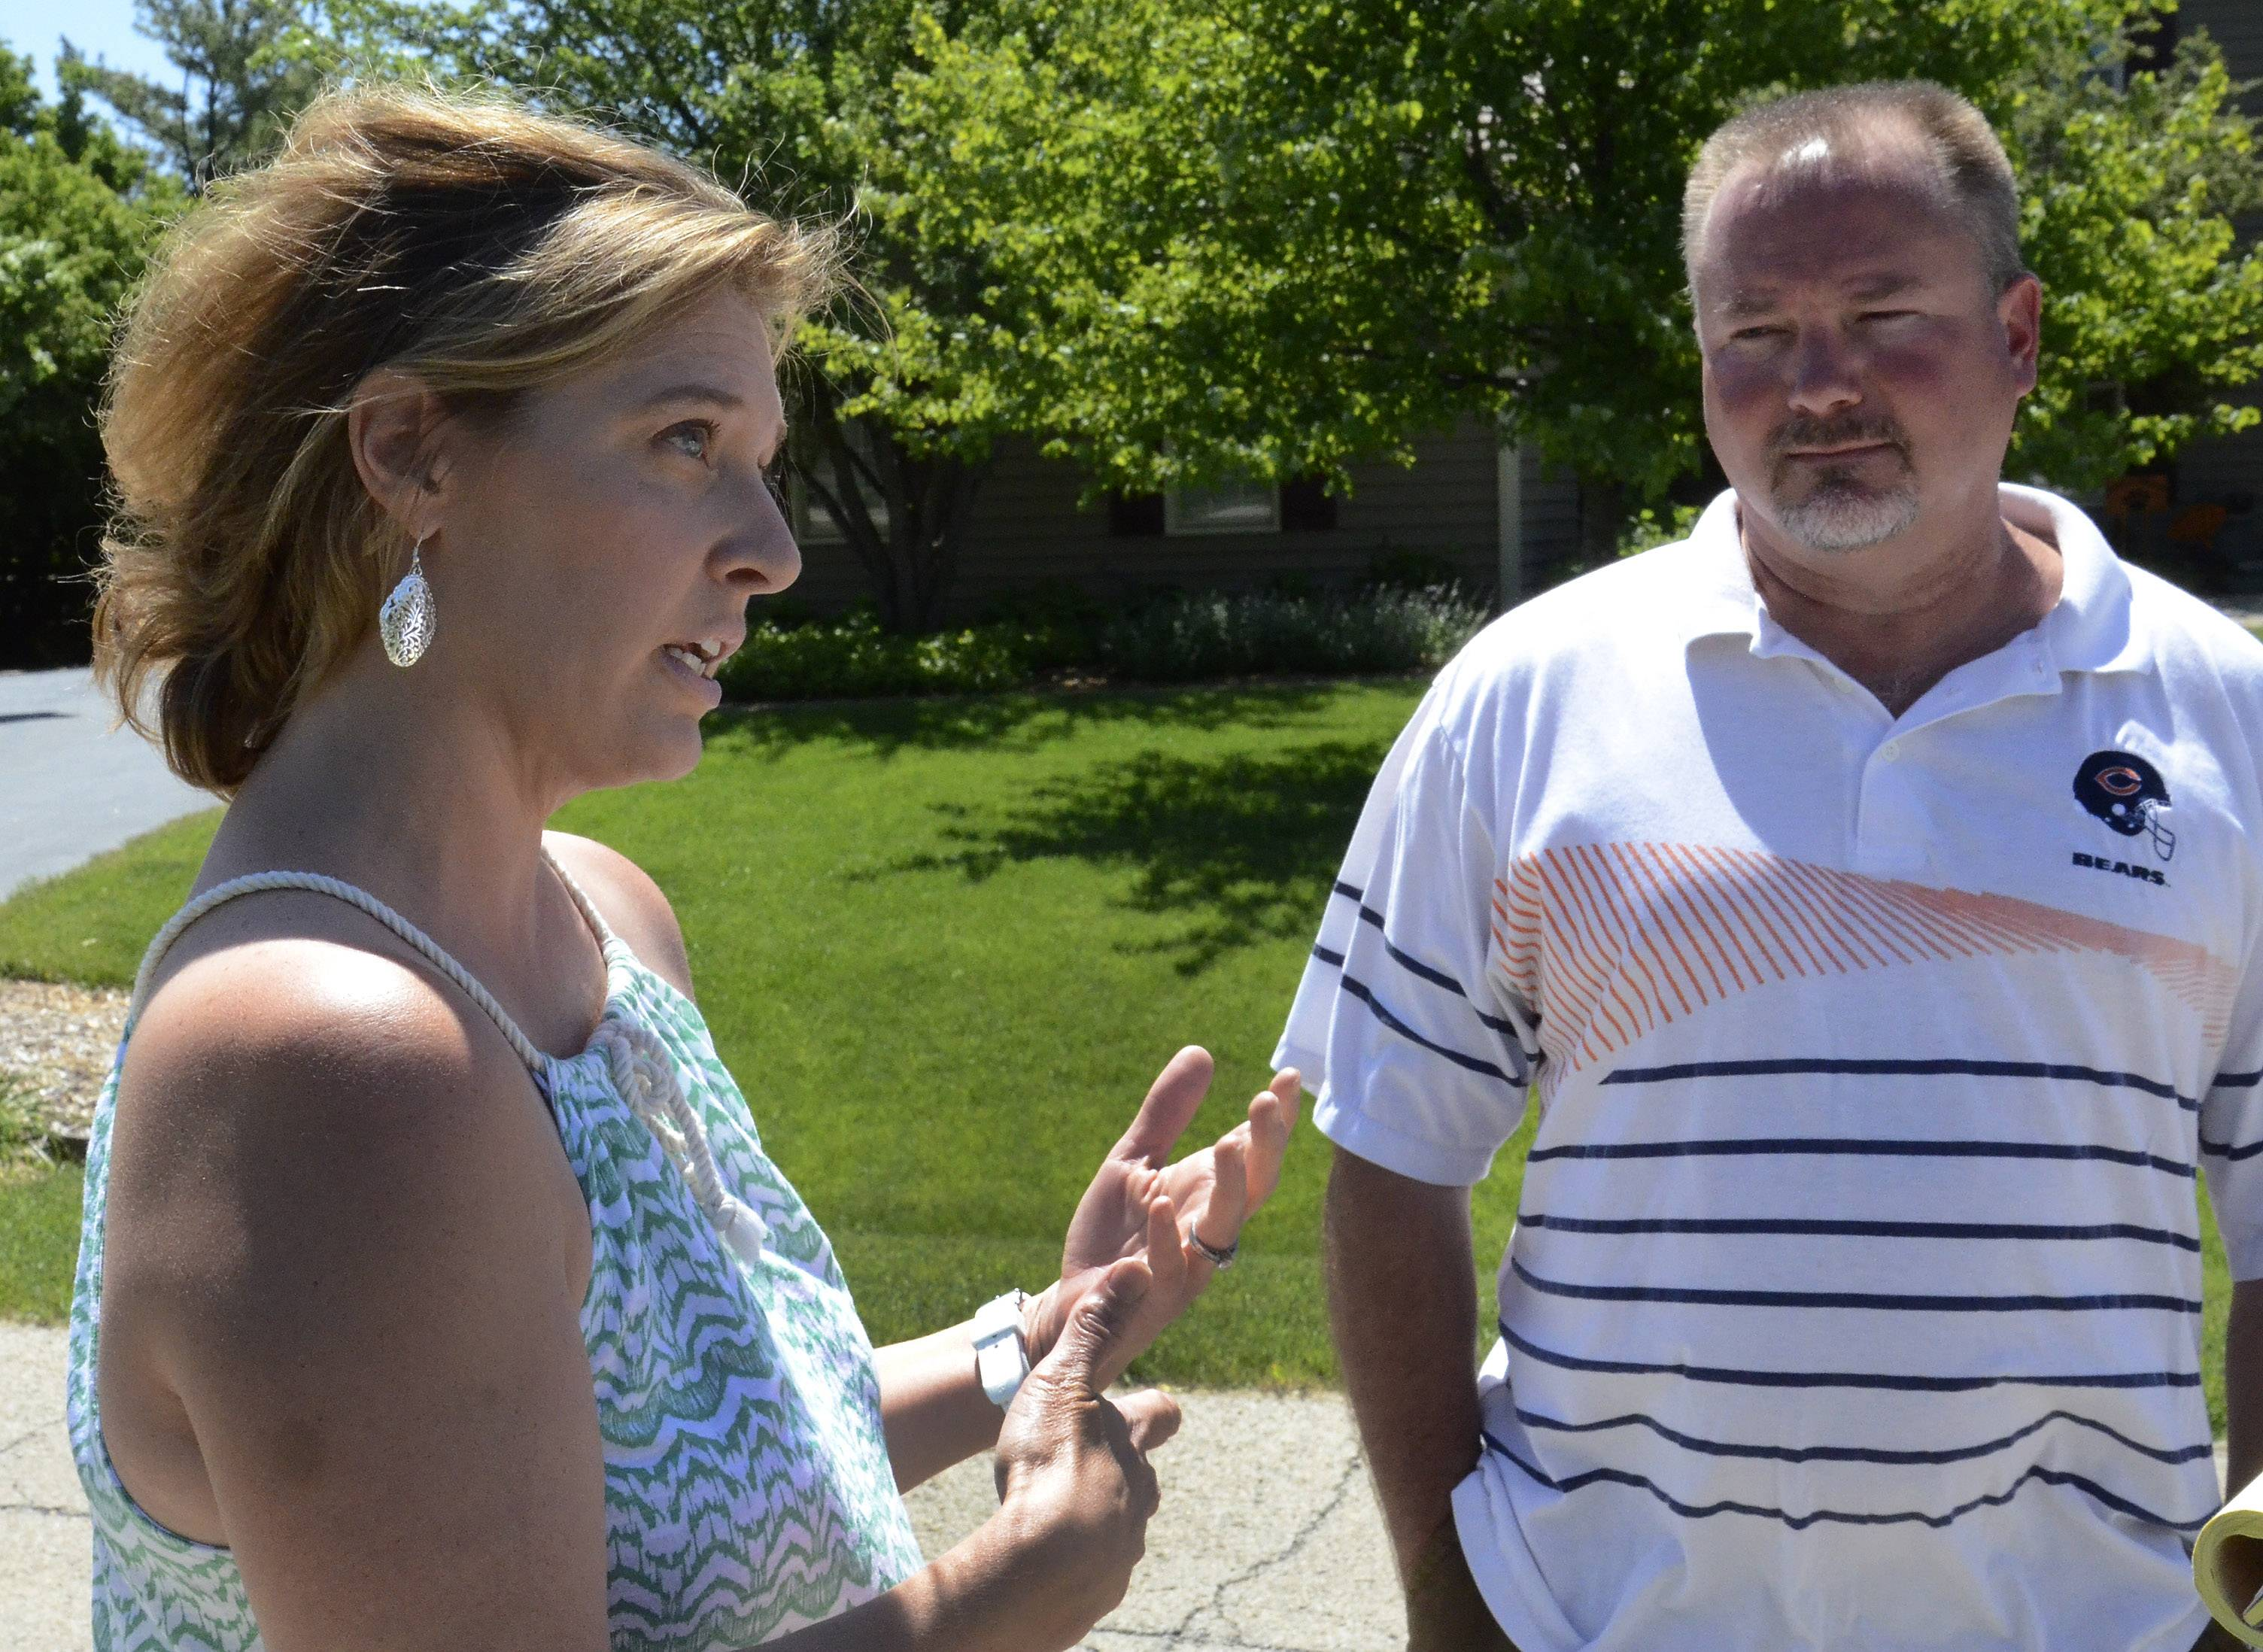 Stephanie Huffman and Todd Larak are concerned about a proposal for a 150-foot cellular tower near their houses in Libertyville Township. The proposal has been withdrawn for the time being.